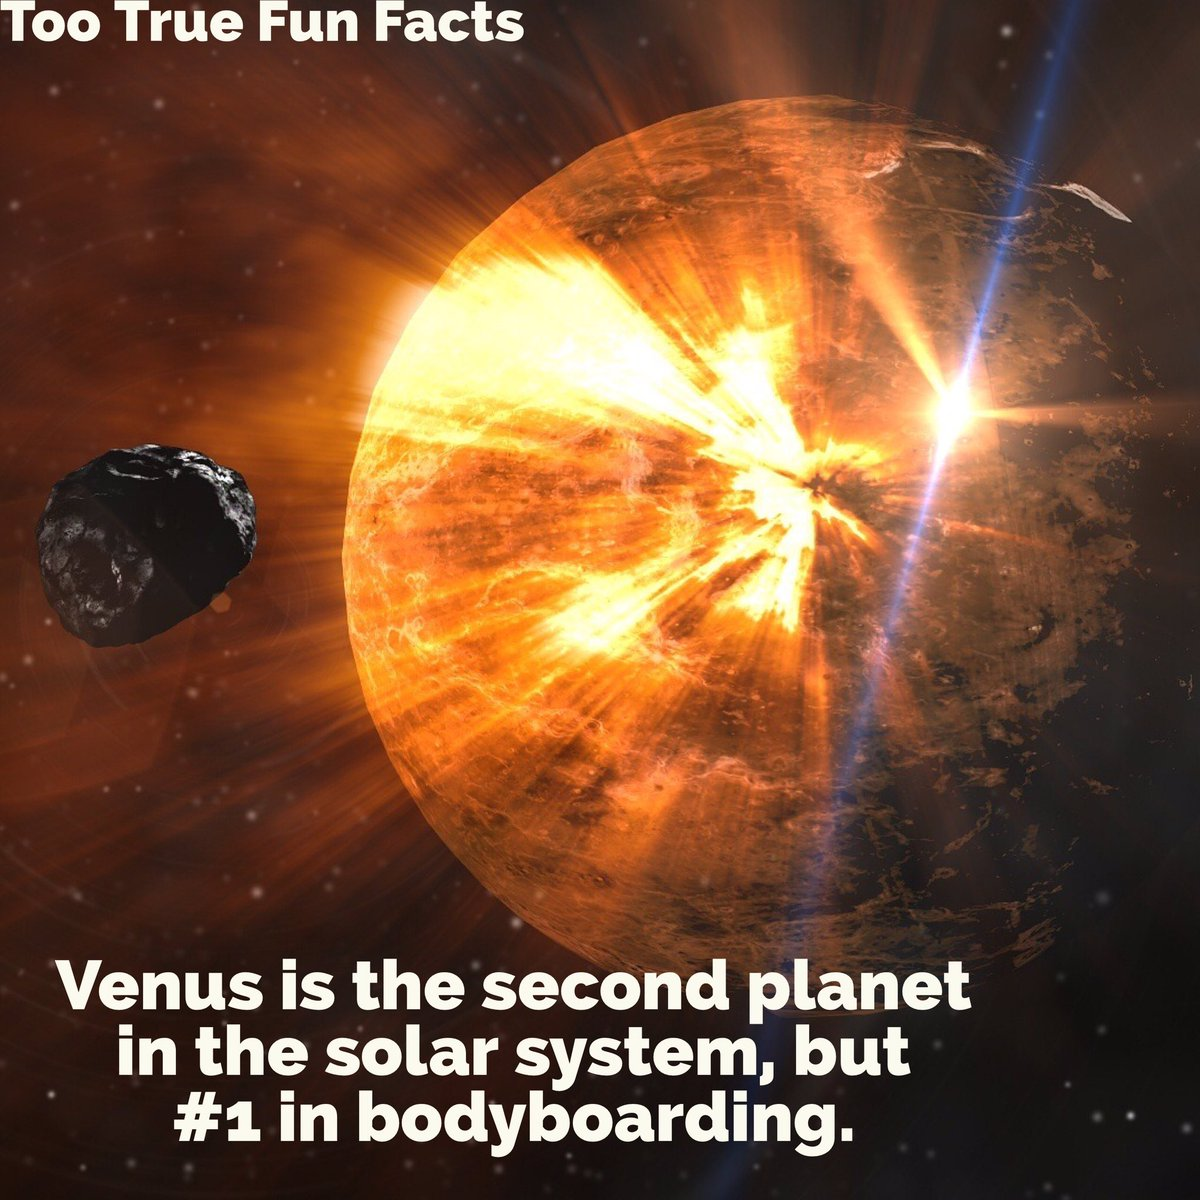 Too True Fun Facts On Twitter Yay Them Planeta Science Sciencehumor Sciencesunday Planets Bodyboarding Comedy Funny Meme Memes Humor Humour Parody Lol Https T Co Xq8iqhjg9x 20 geeky memes that true science fans will understand (and love!) via quickmeme. planeta science sciencehumor